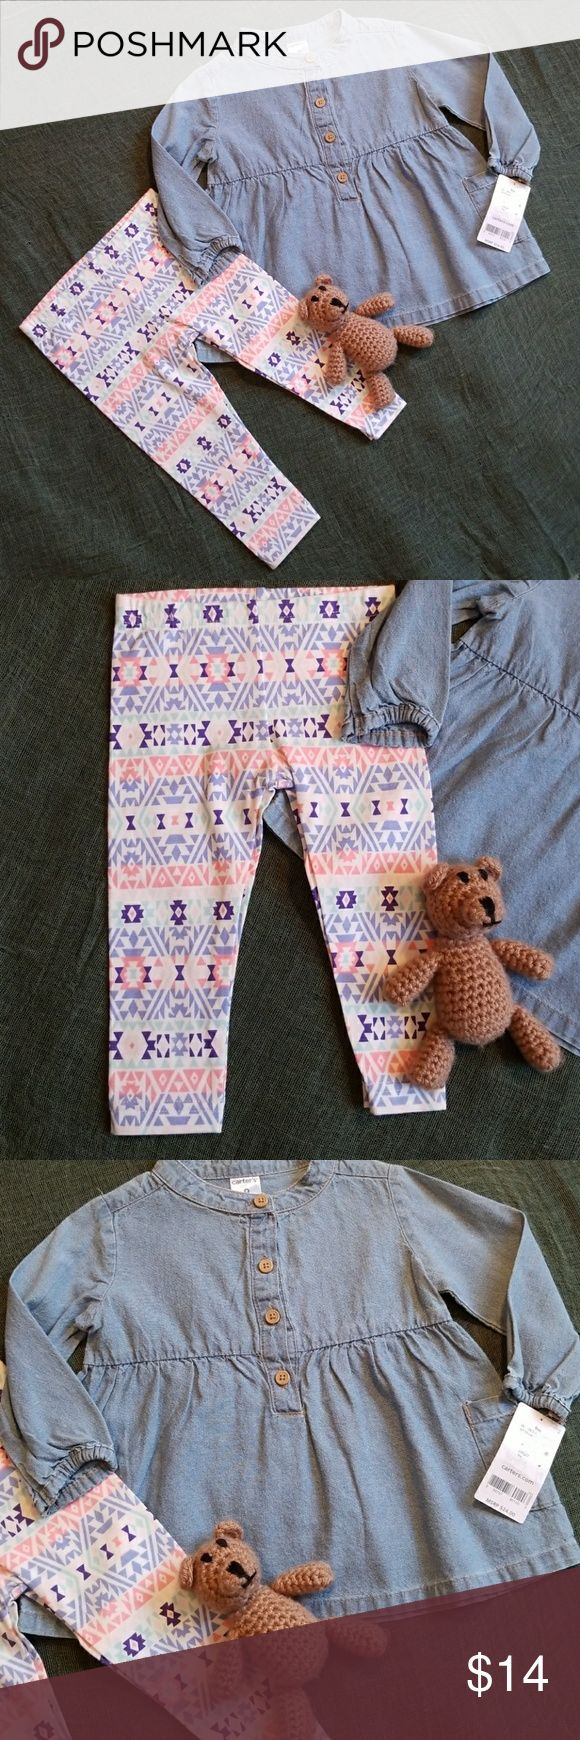 Carter's Soft Denim Top & Aztec Legging Outfit NWT Denim tunic top paired with aztec style leggings  New with tags attached $24 Thanks for looking and happy shopping!  Teddy bear is not included. Carter's Matching Sets